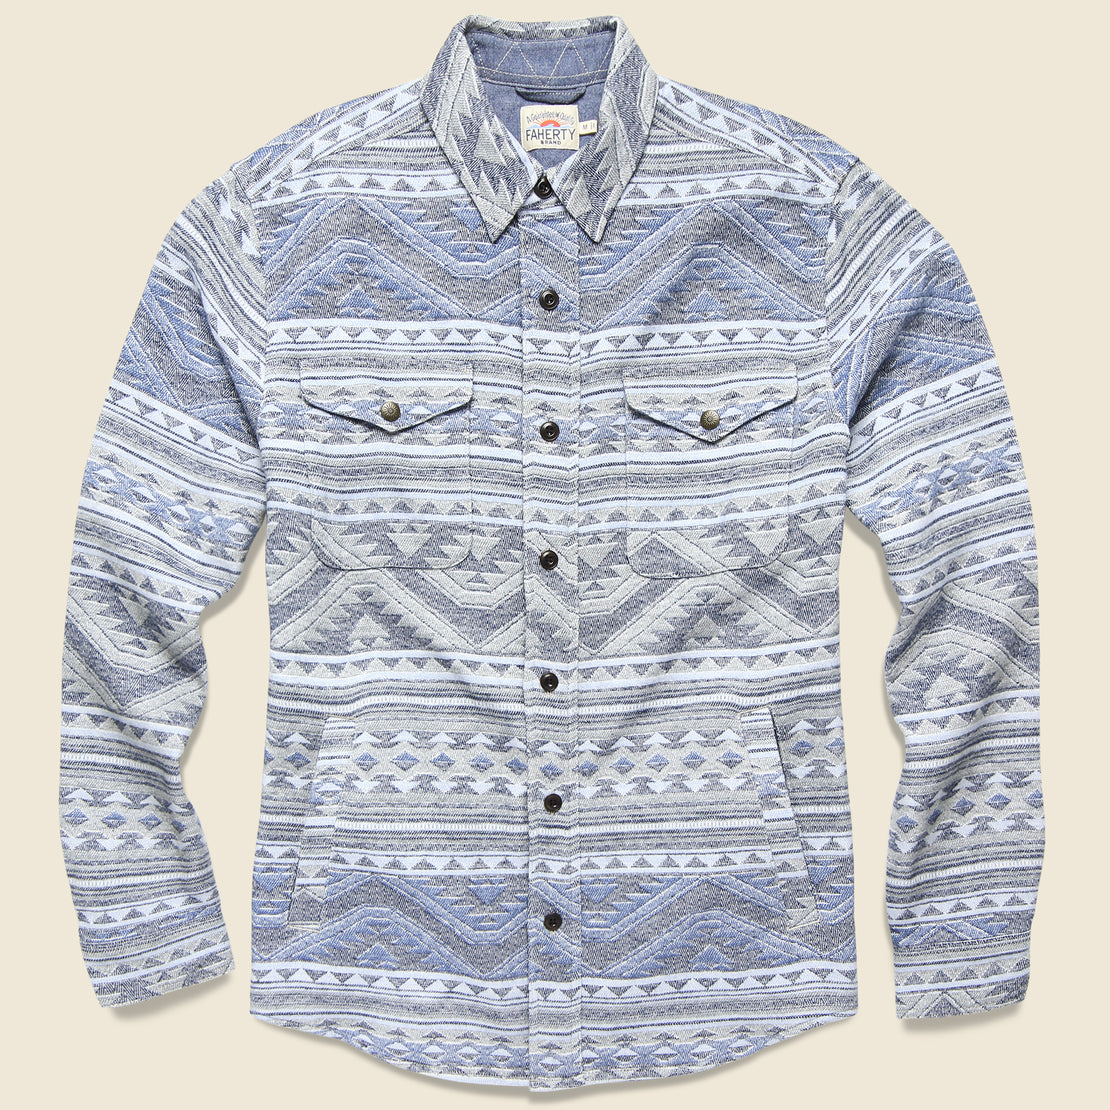 Faherty Durango CPO Workshirt - Twilight Glacier